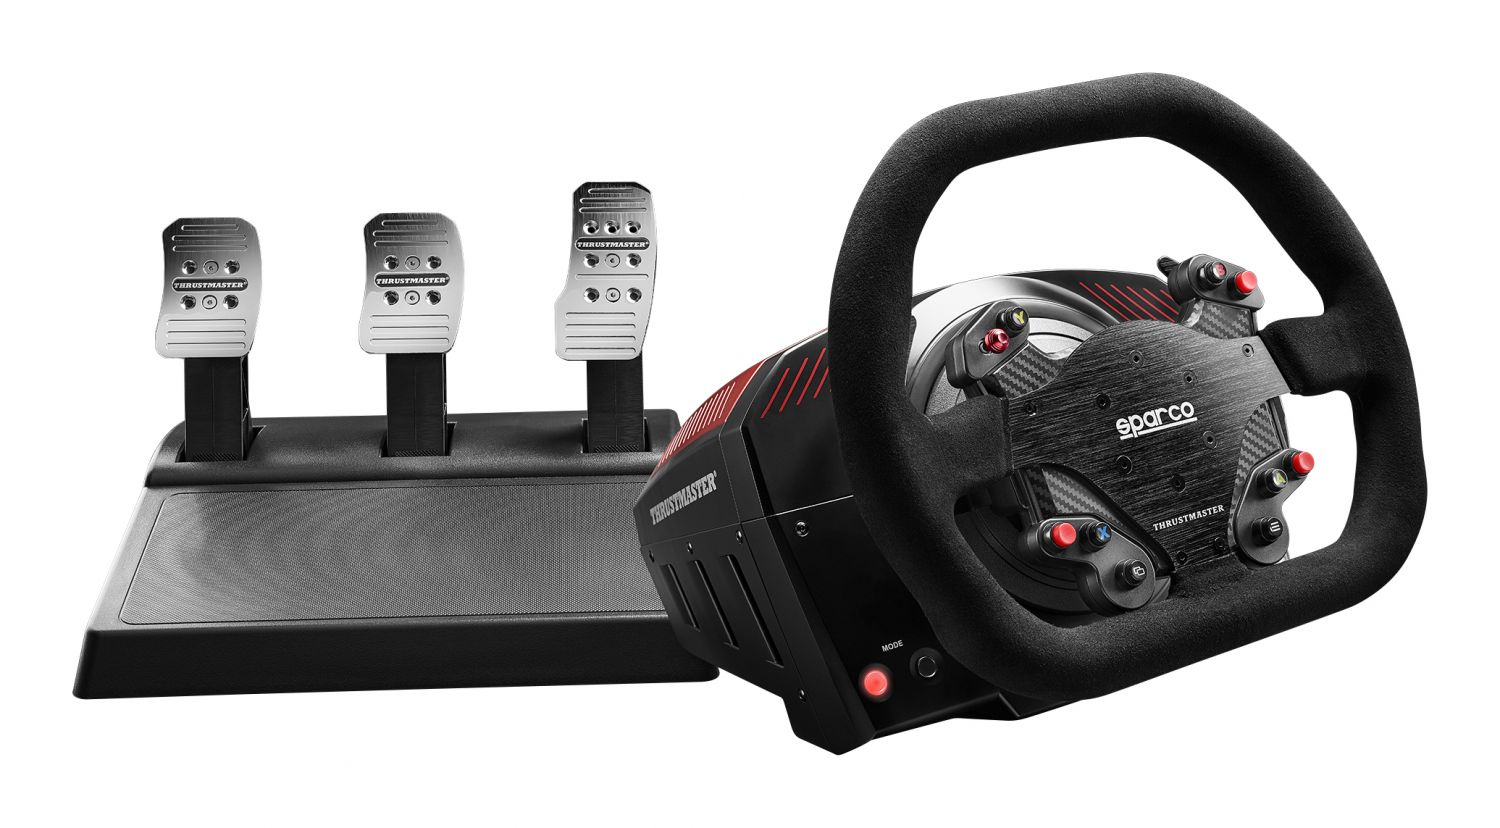 Thrustmaster Ts Xw Racer Sparco P310 Competition Mod Racing Wheel Home Gt Switches Progressive Toggle Switch Officially Licensed For Both Xbox One And Windows Pc